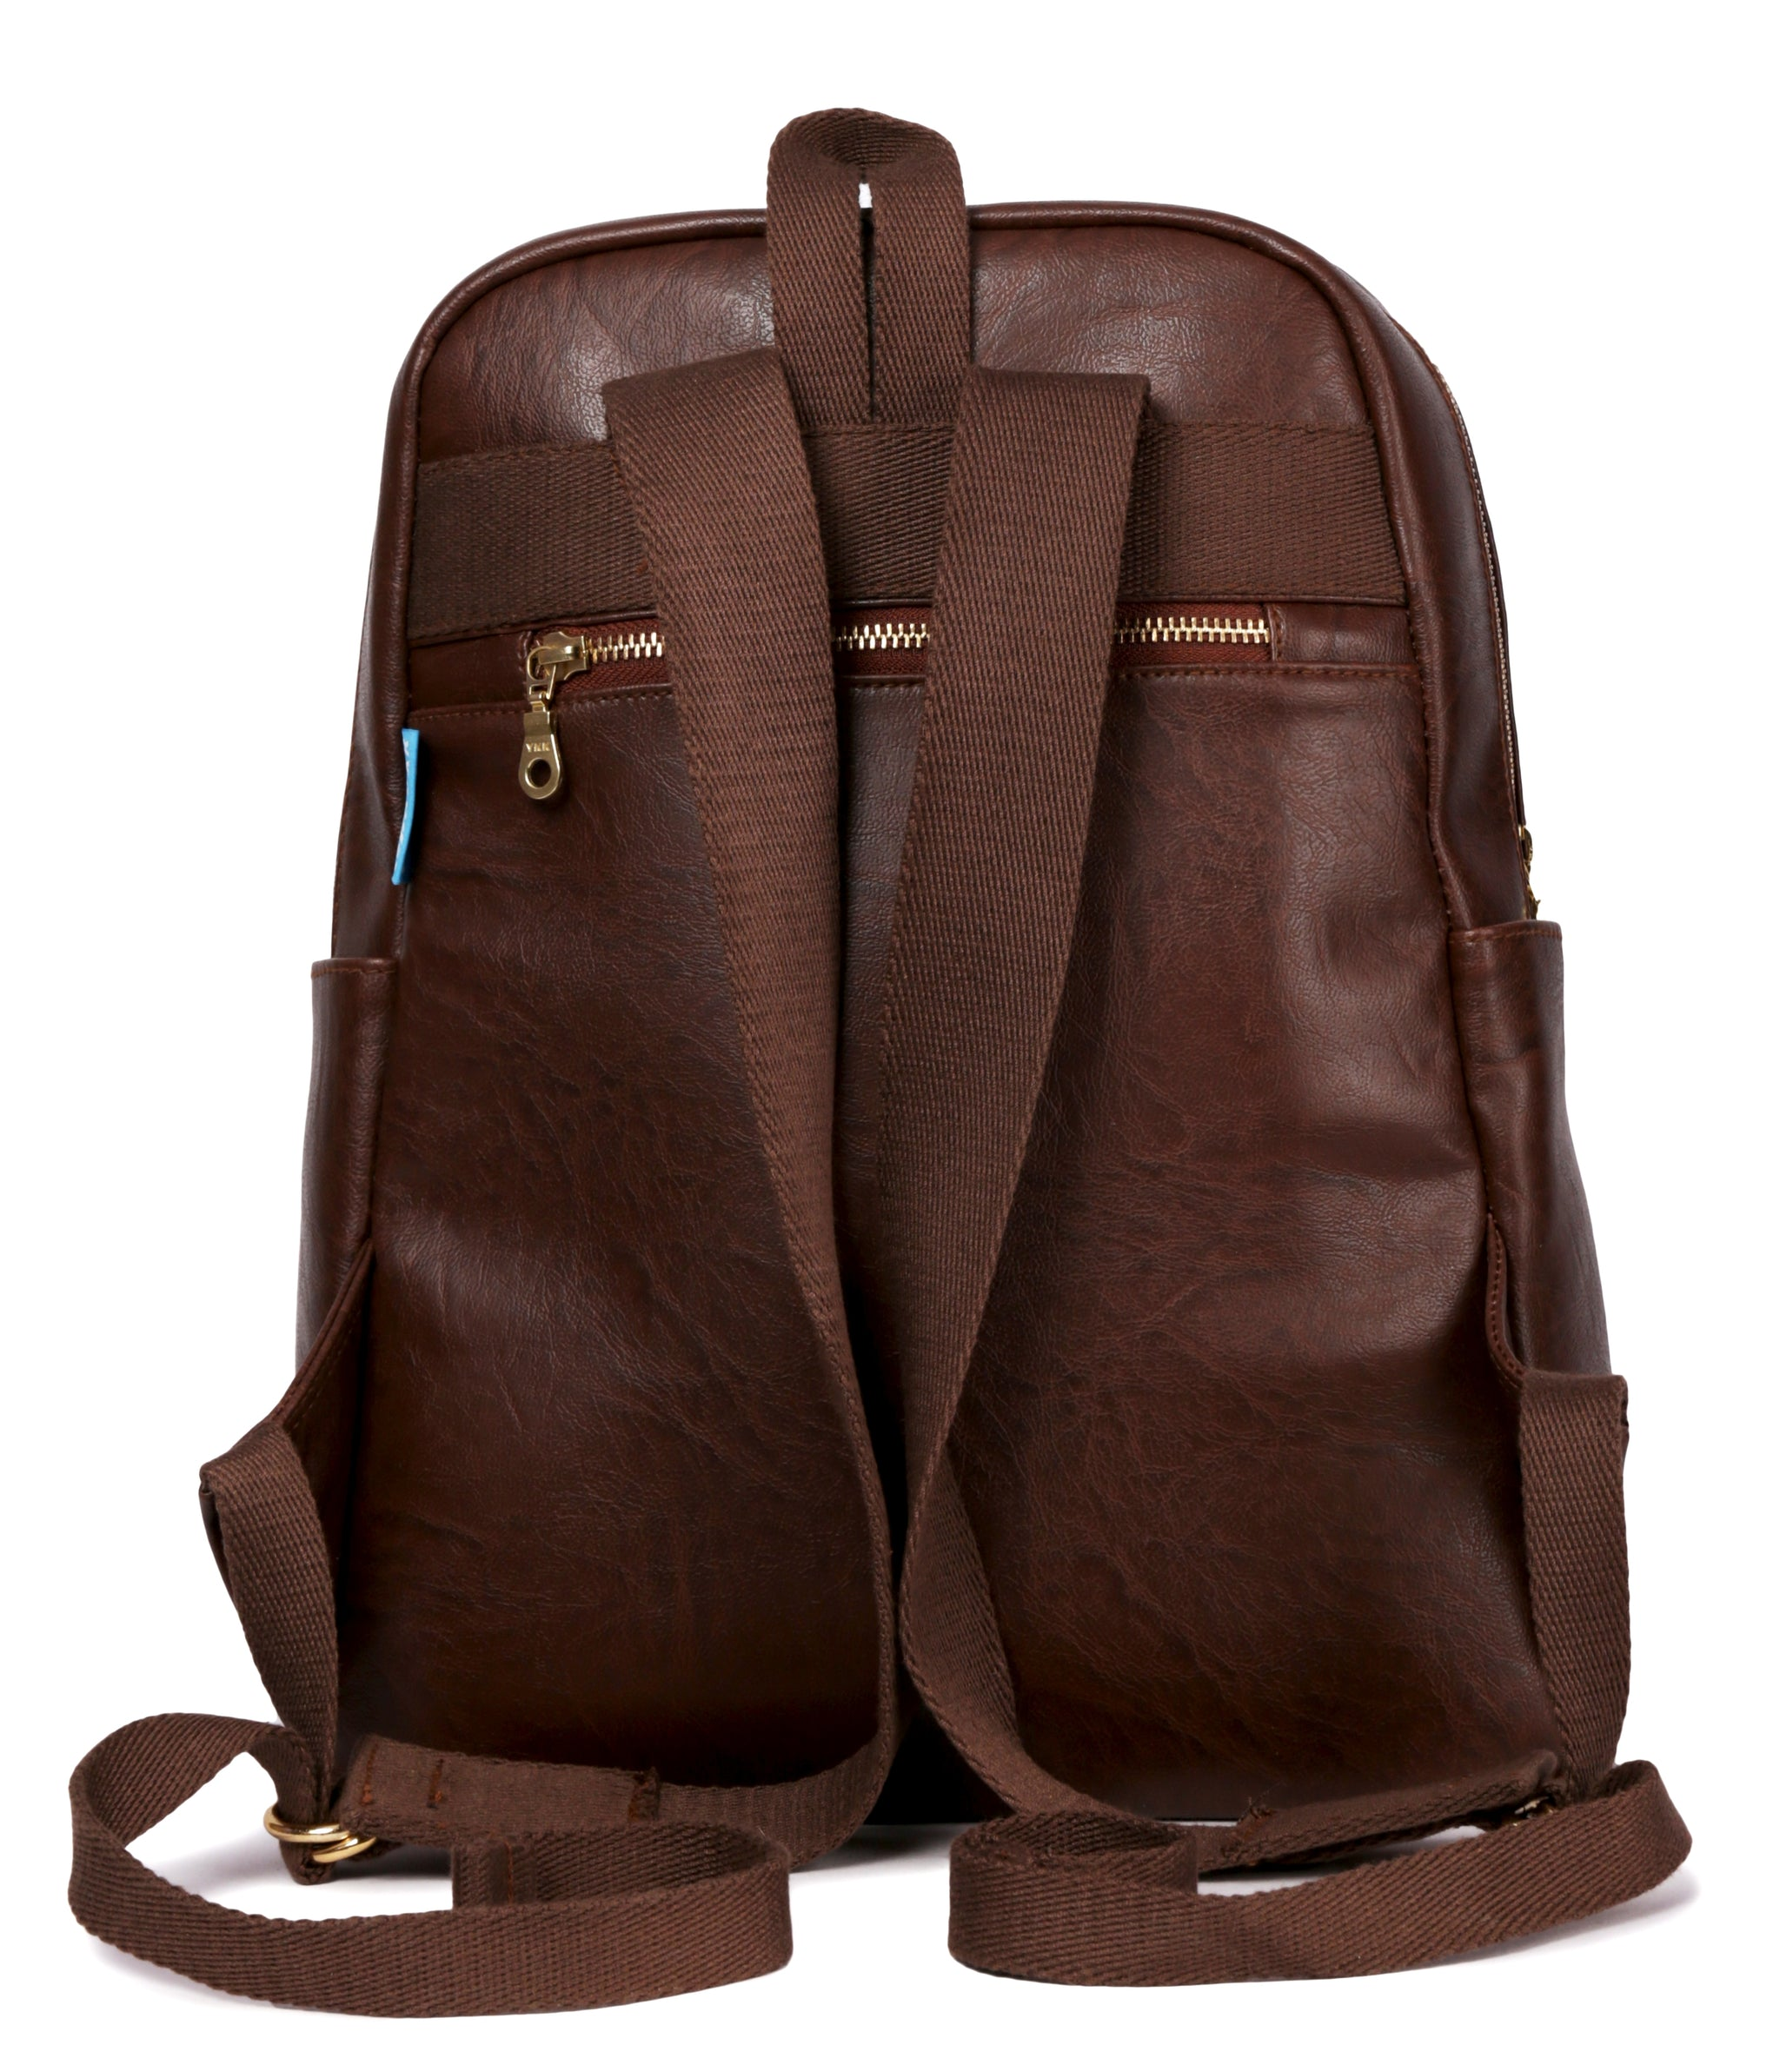 F Gear Treasure 16 Liters Causal Backpack (Brown)